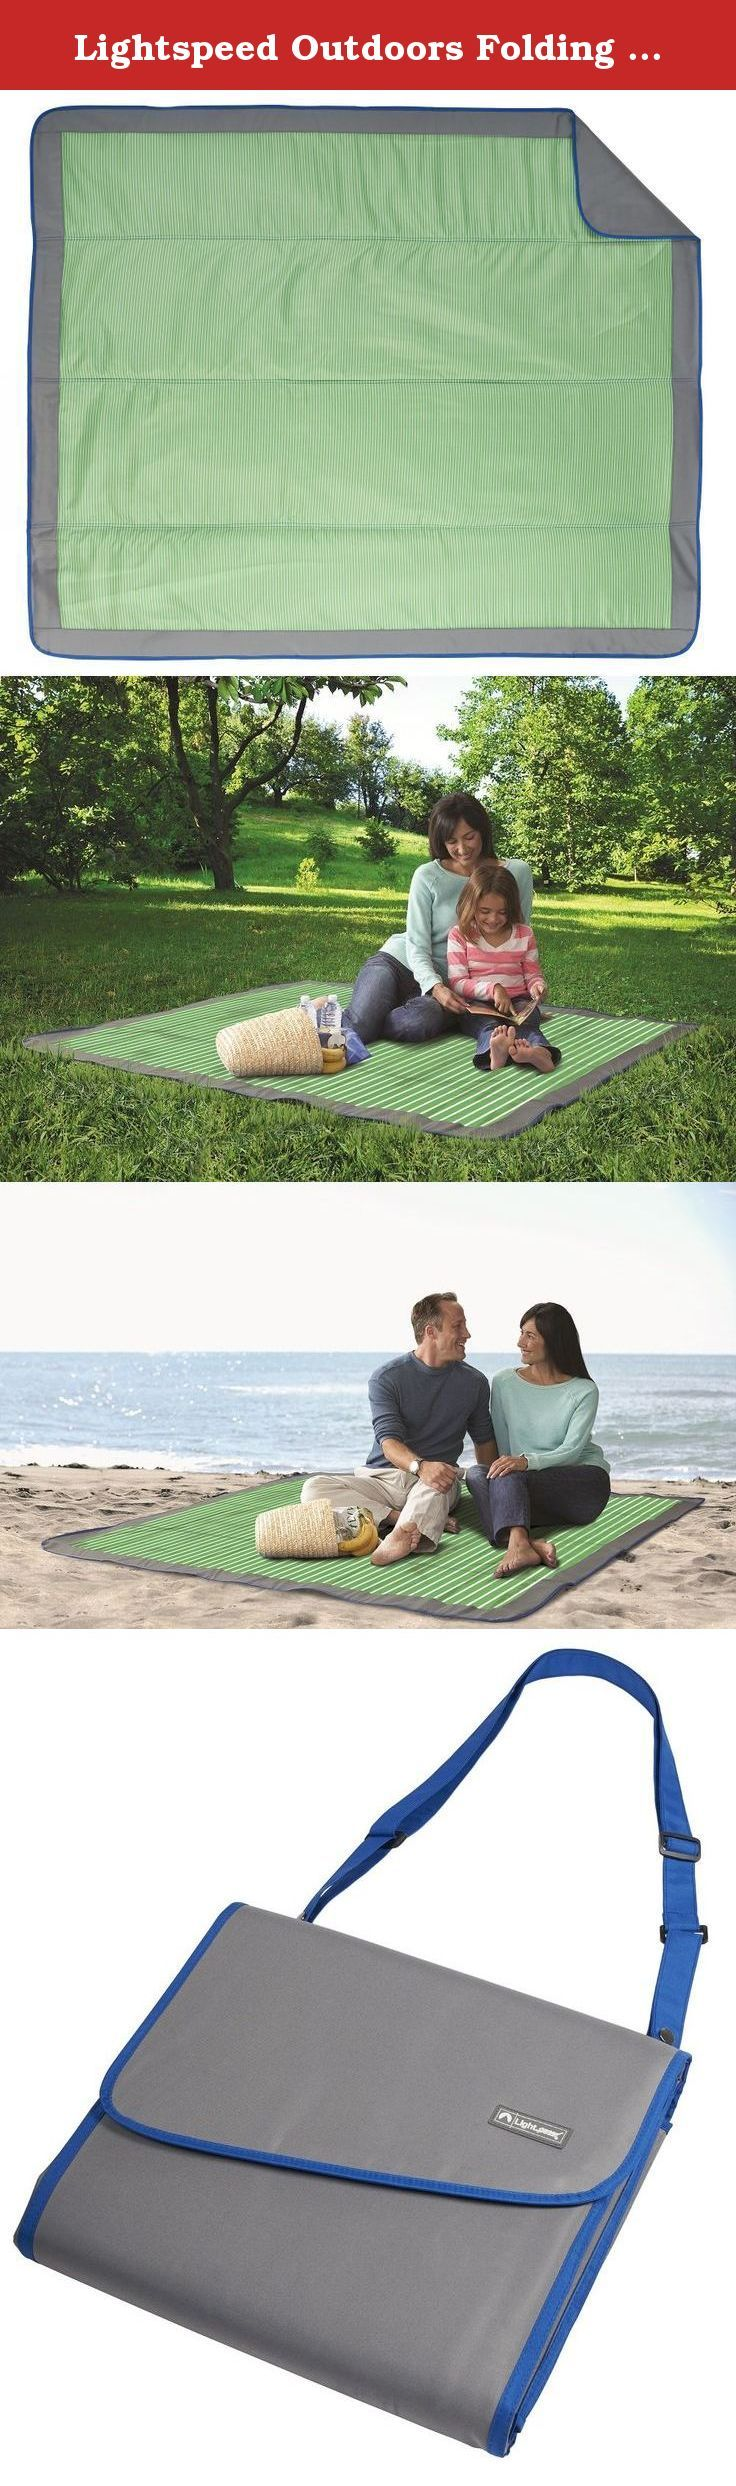 Lightspeed Outdoors Folding Outdoor Blanket, 58 x 70-inch (Green Stripe). The Lightspeed Outdoors Folding Outdoor Blanket was designed for any family occasion. Comprised of 3-layers, this outdoor blanket is a technical masterpiece. The first layer is a heavy yet spongy material that insulates the middle cushion layer from wet and hard ground. A top layer of soft, water repellent polyester brings it all together. The perfect complement to most of our shelters, this outdoor blanket is one…